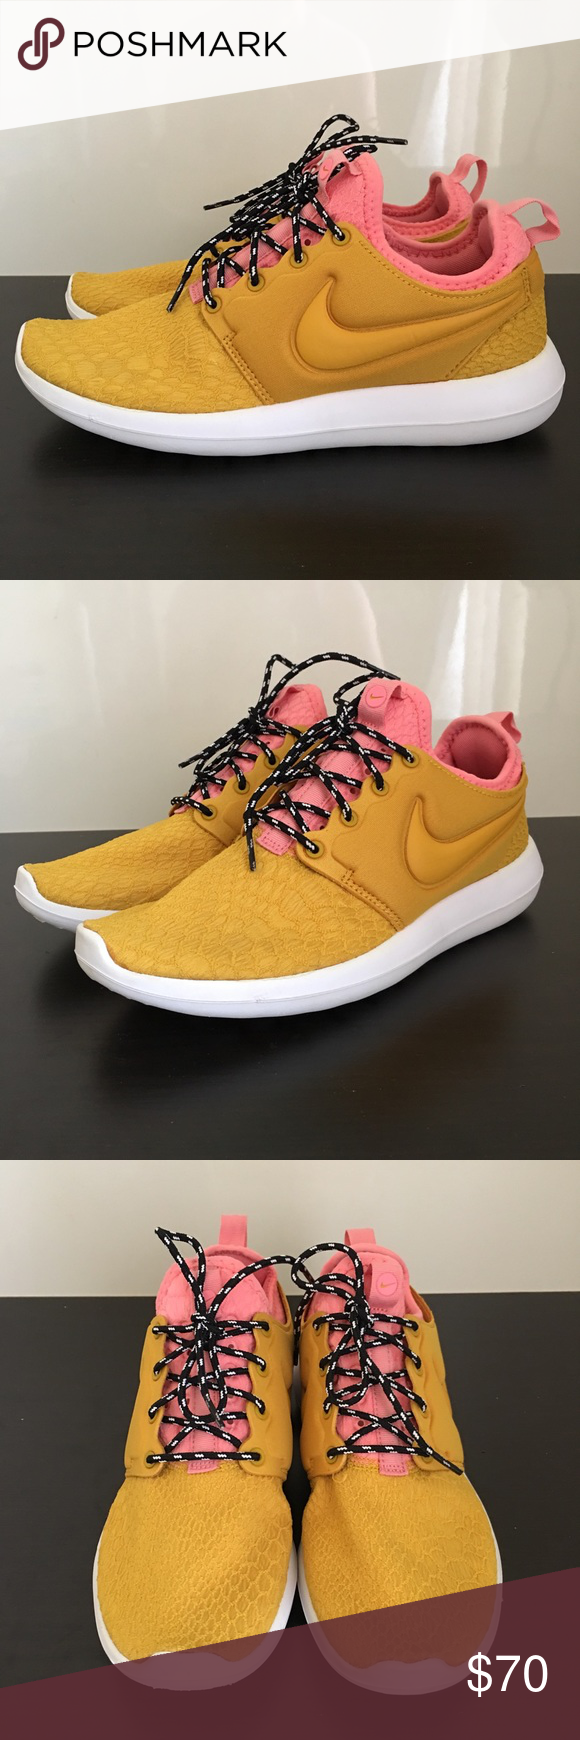 f2fef47d95a10 WOMEN NIKE ROSHE 2 RUNNING TRAINING SNEAKERS SZ 8 EXCELLENT PREOWNED  CONDITION WOMENS NIKE ROSHE 2